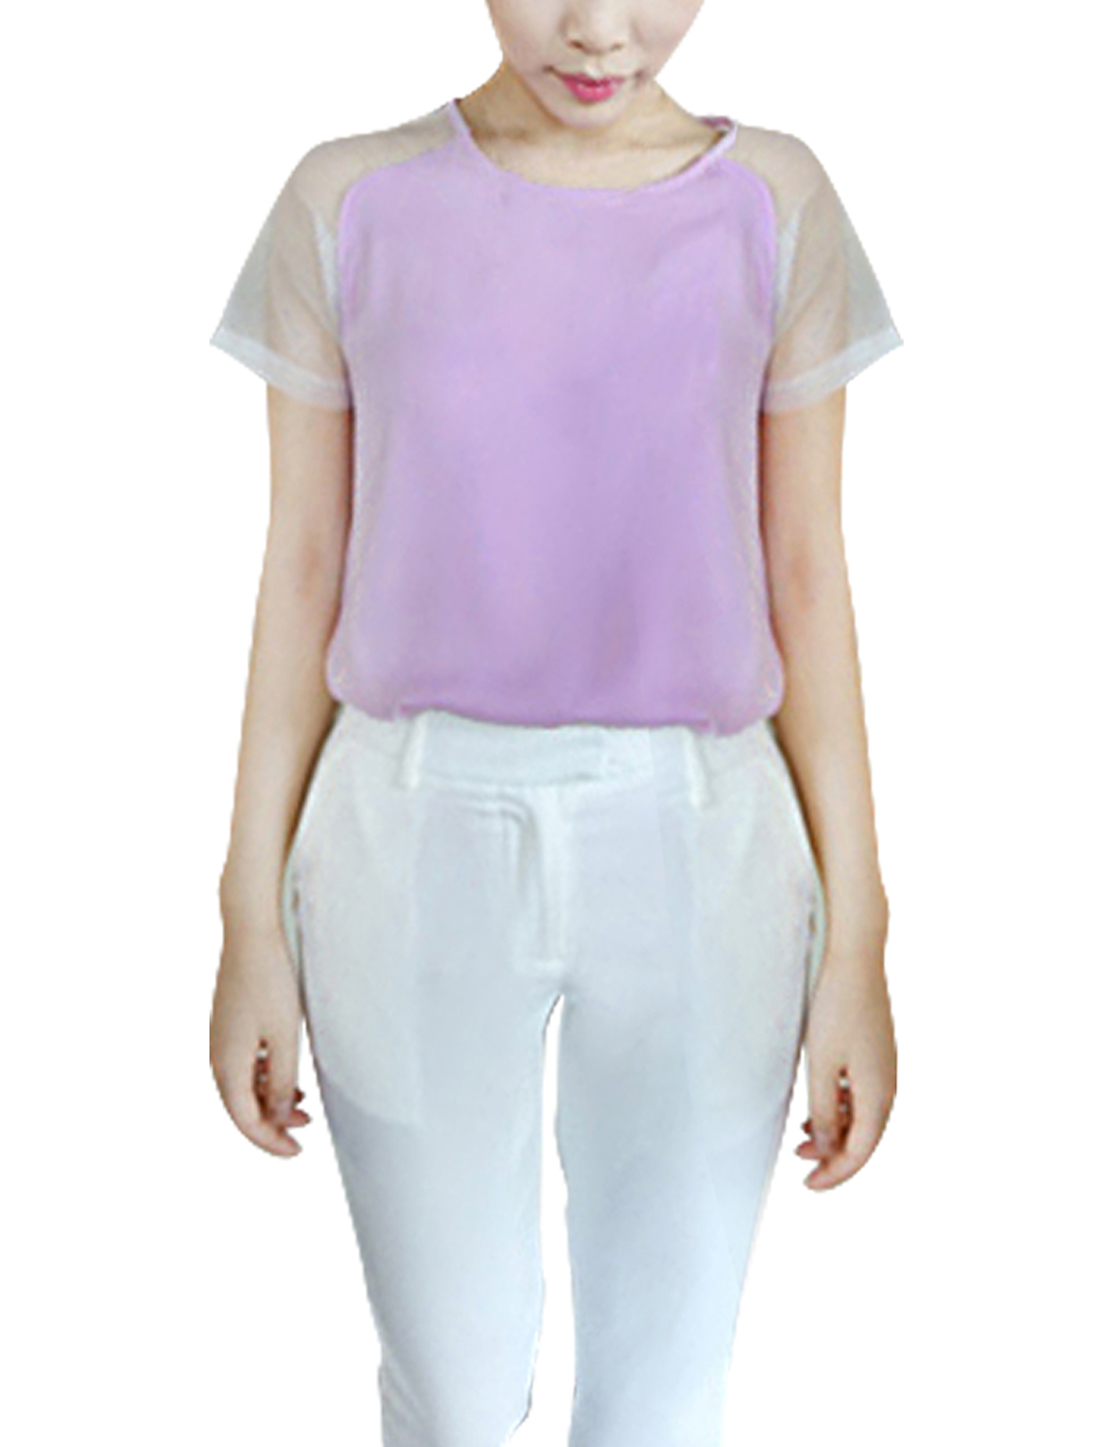 Women Button Back Round Neck Leisure Chiffon Shirt Light Purple XS